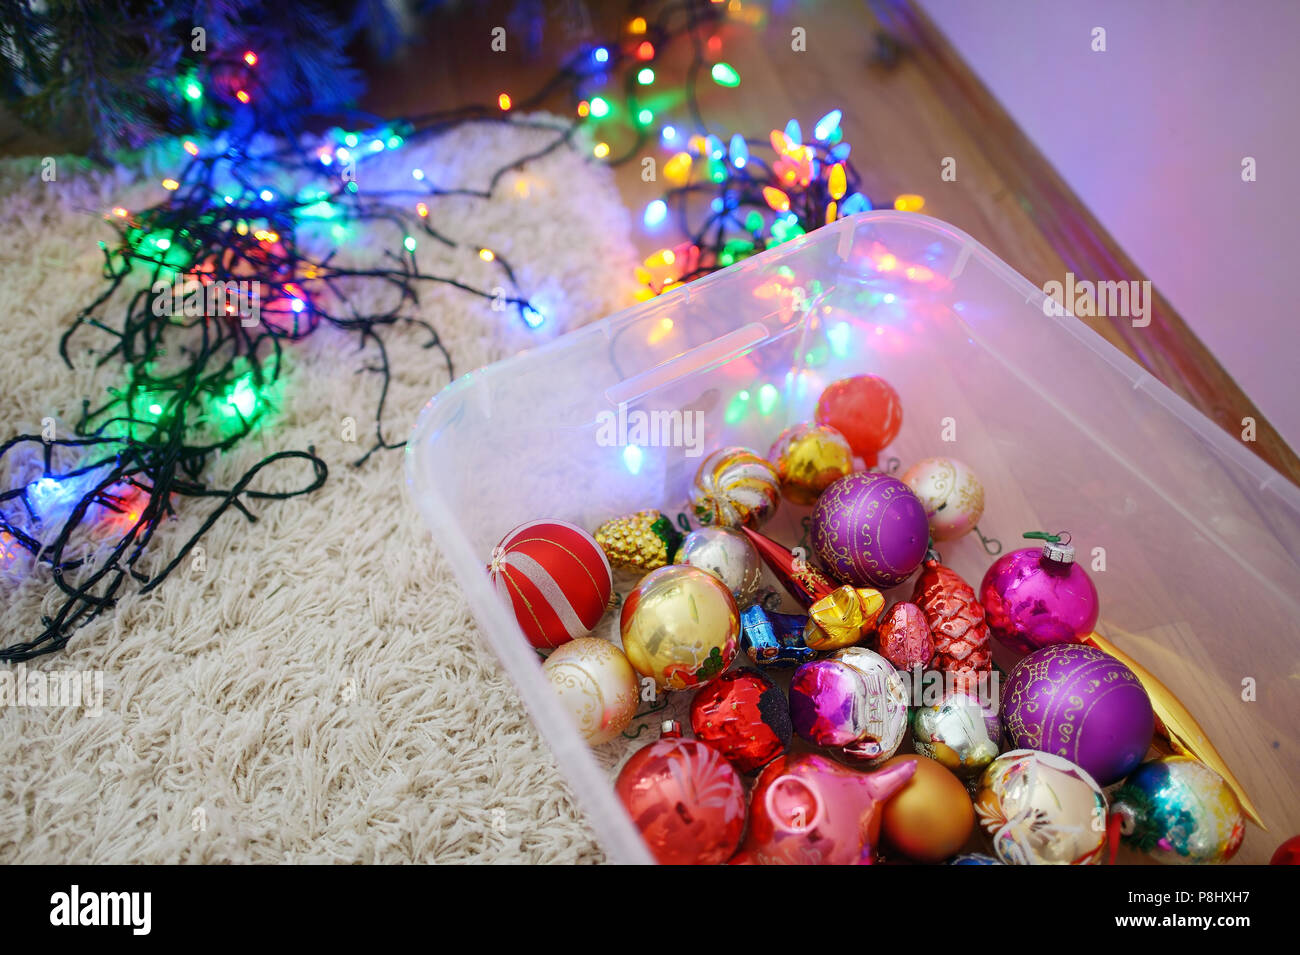 various colorful christmas decorations in a box